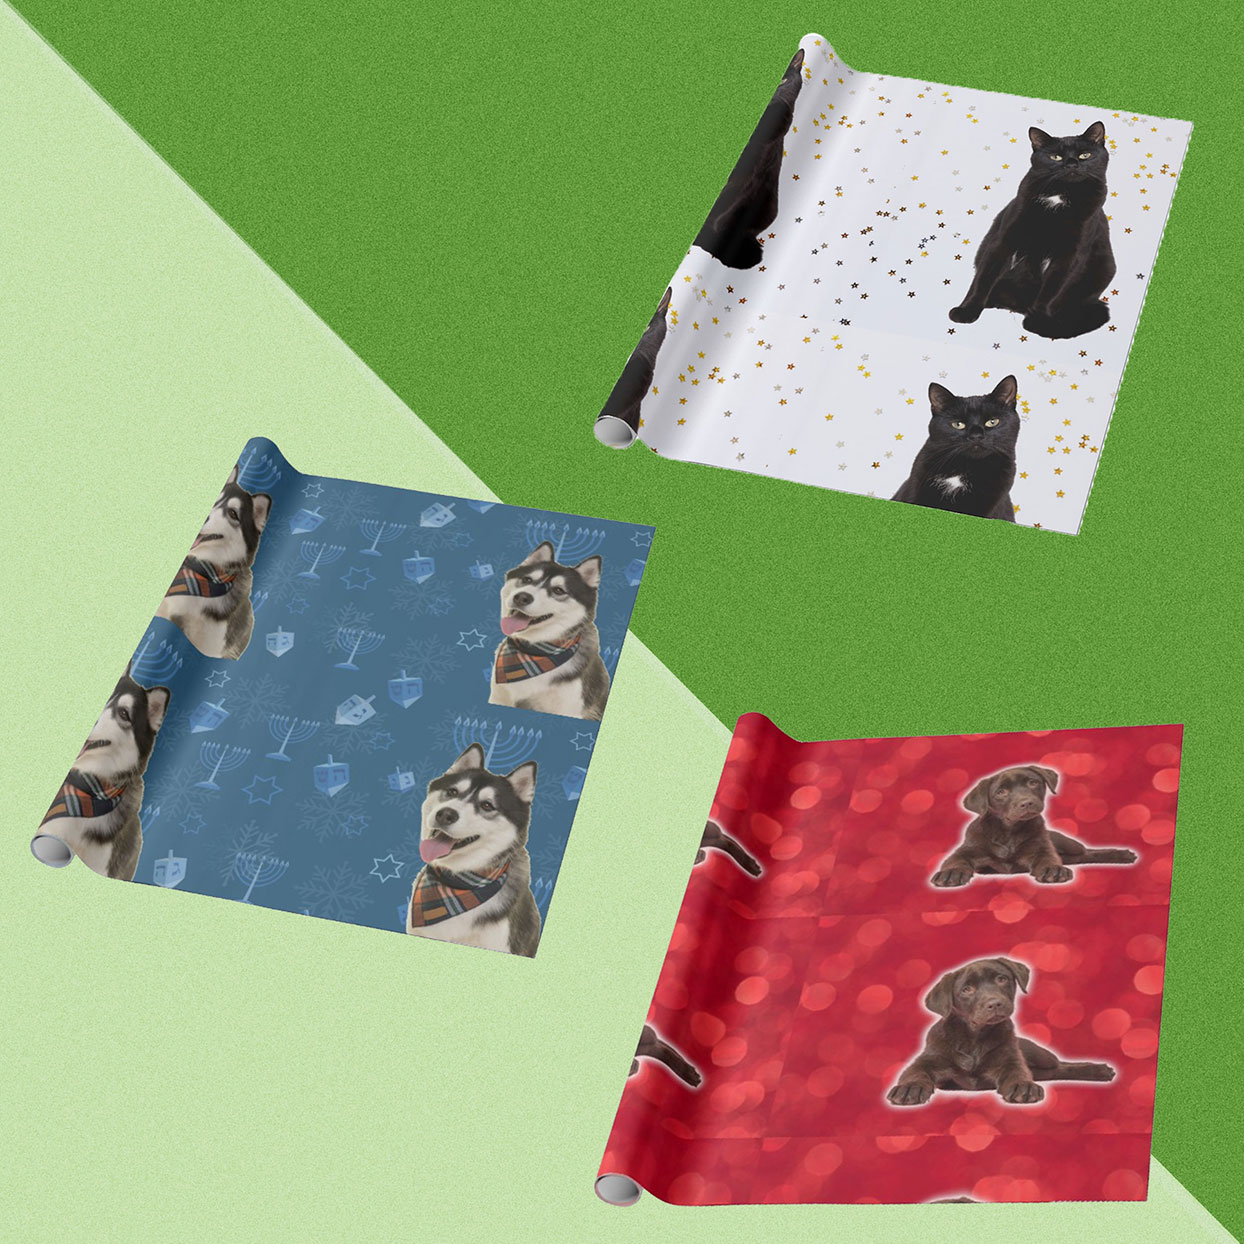 You Can Make Holiday Wrapping Paper with Your Pet's Face on It